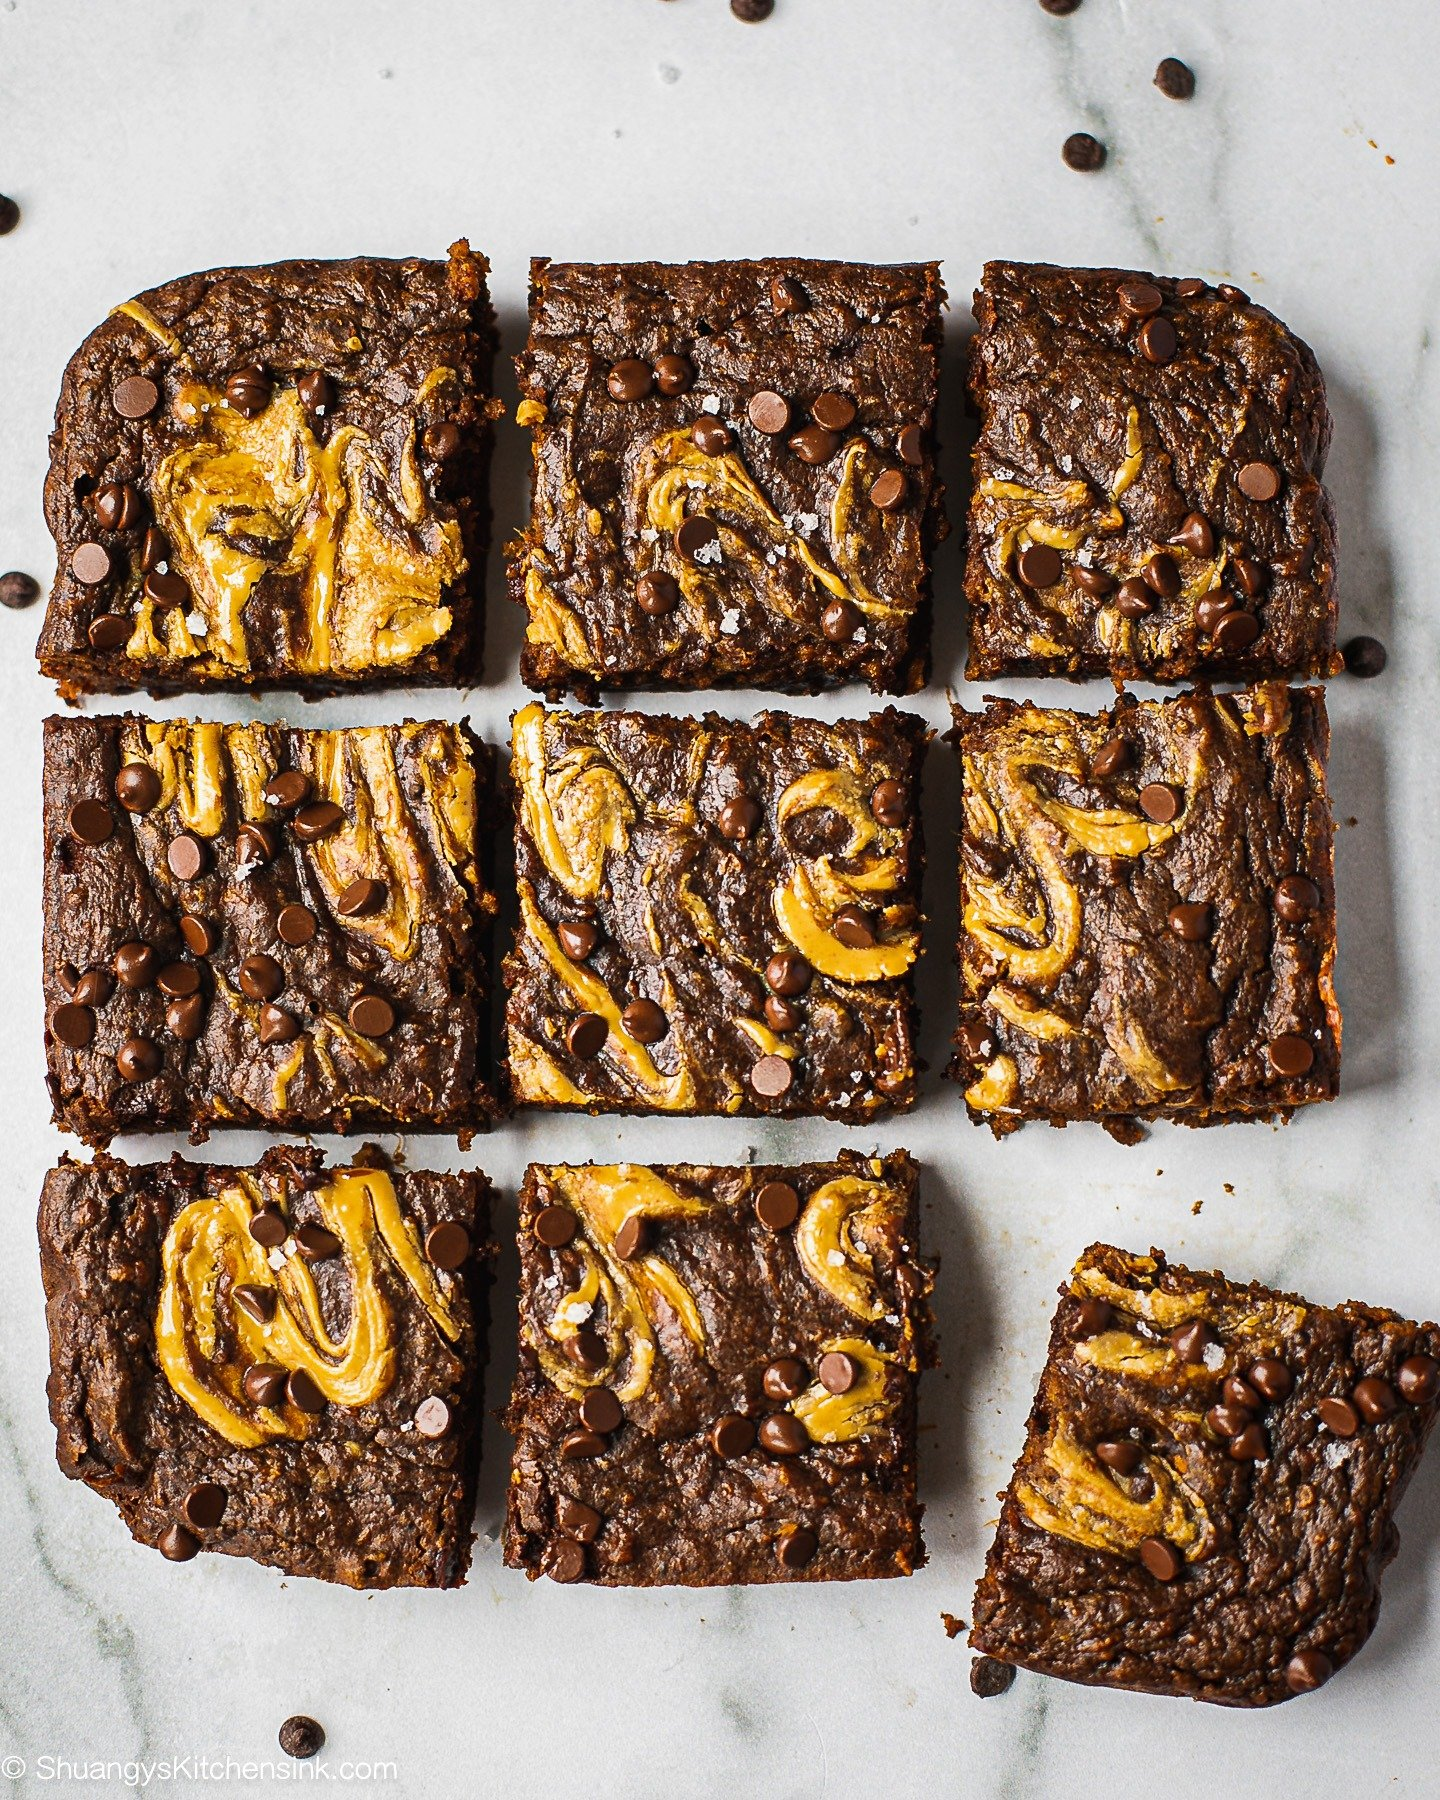 9 pieces of sweet potato paleo brownies with almond butter swirl and chocolate chips on top.